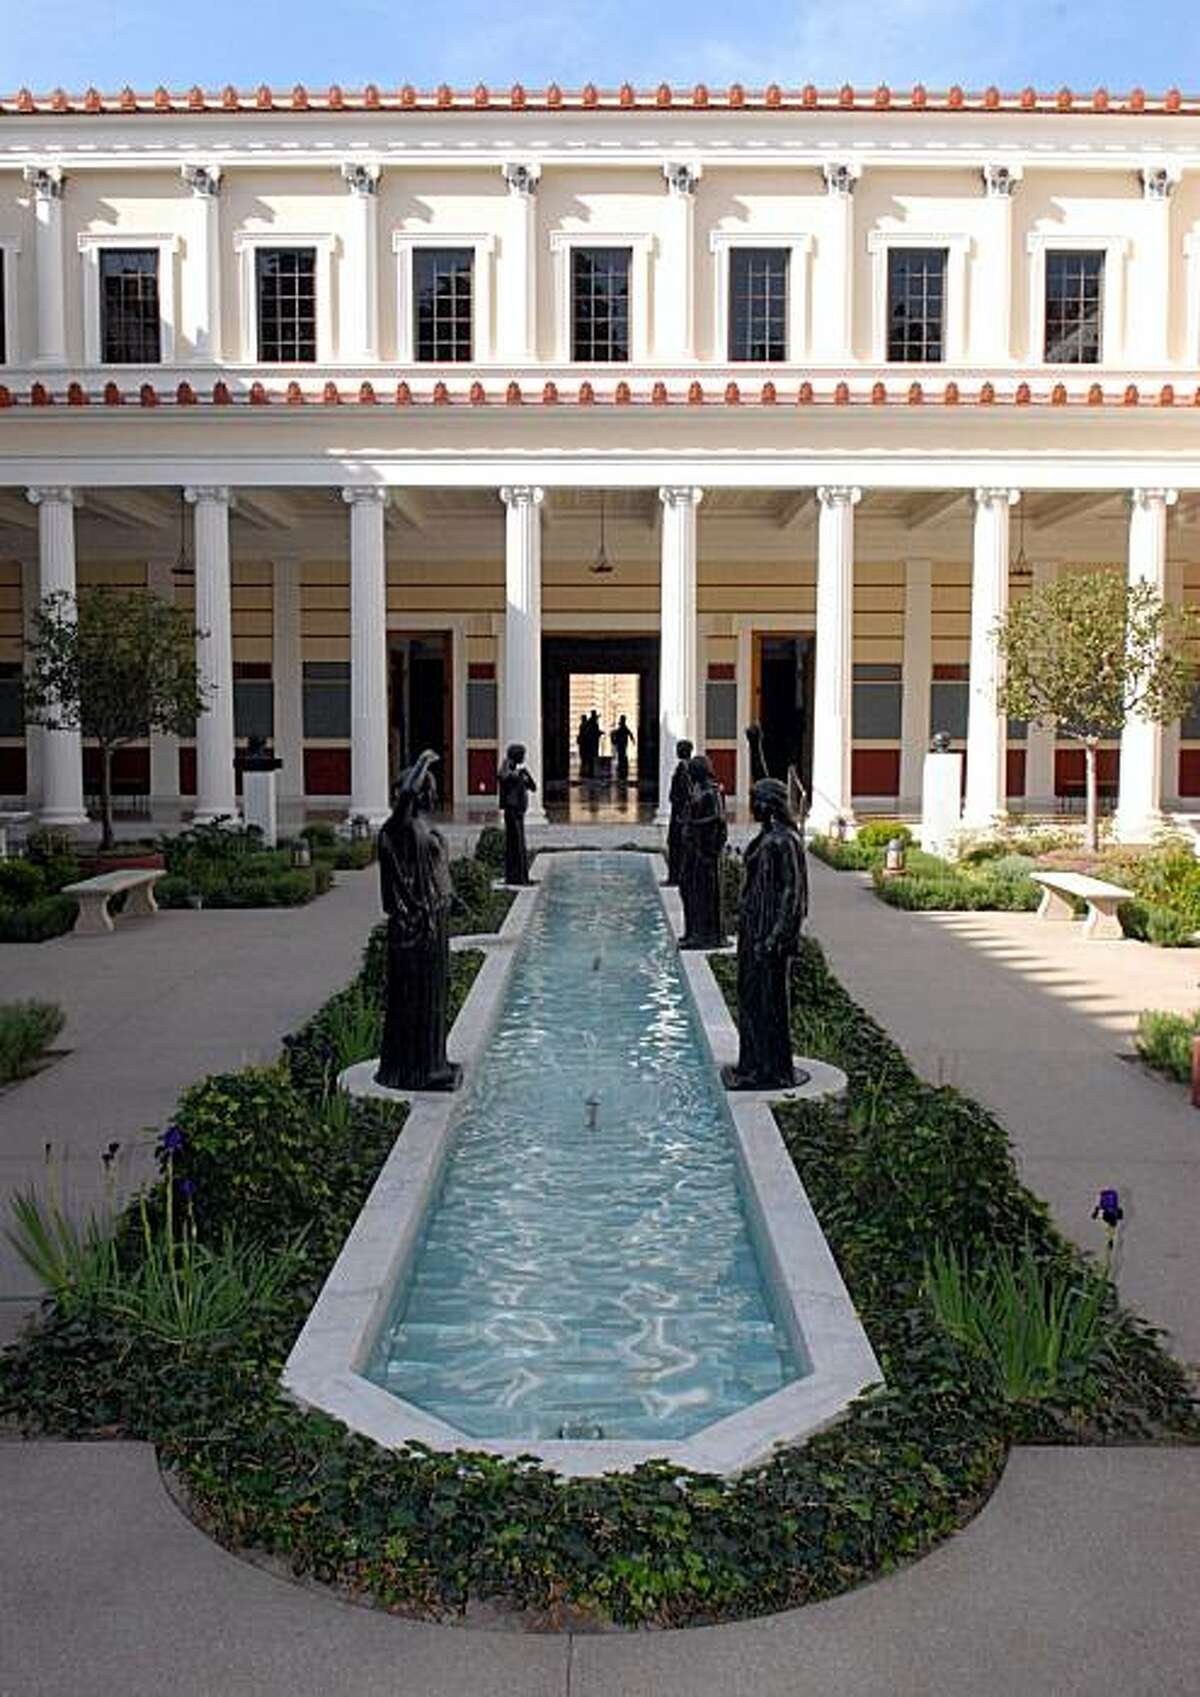 a view of the Inner Peristyle inside the J. Paul Getty Museum at the Getty Villa.